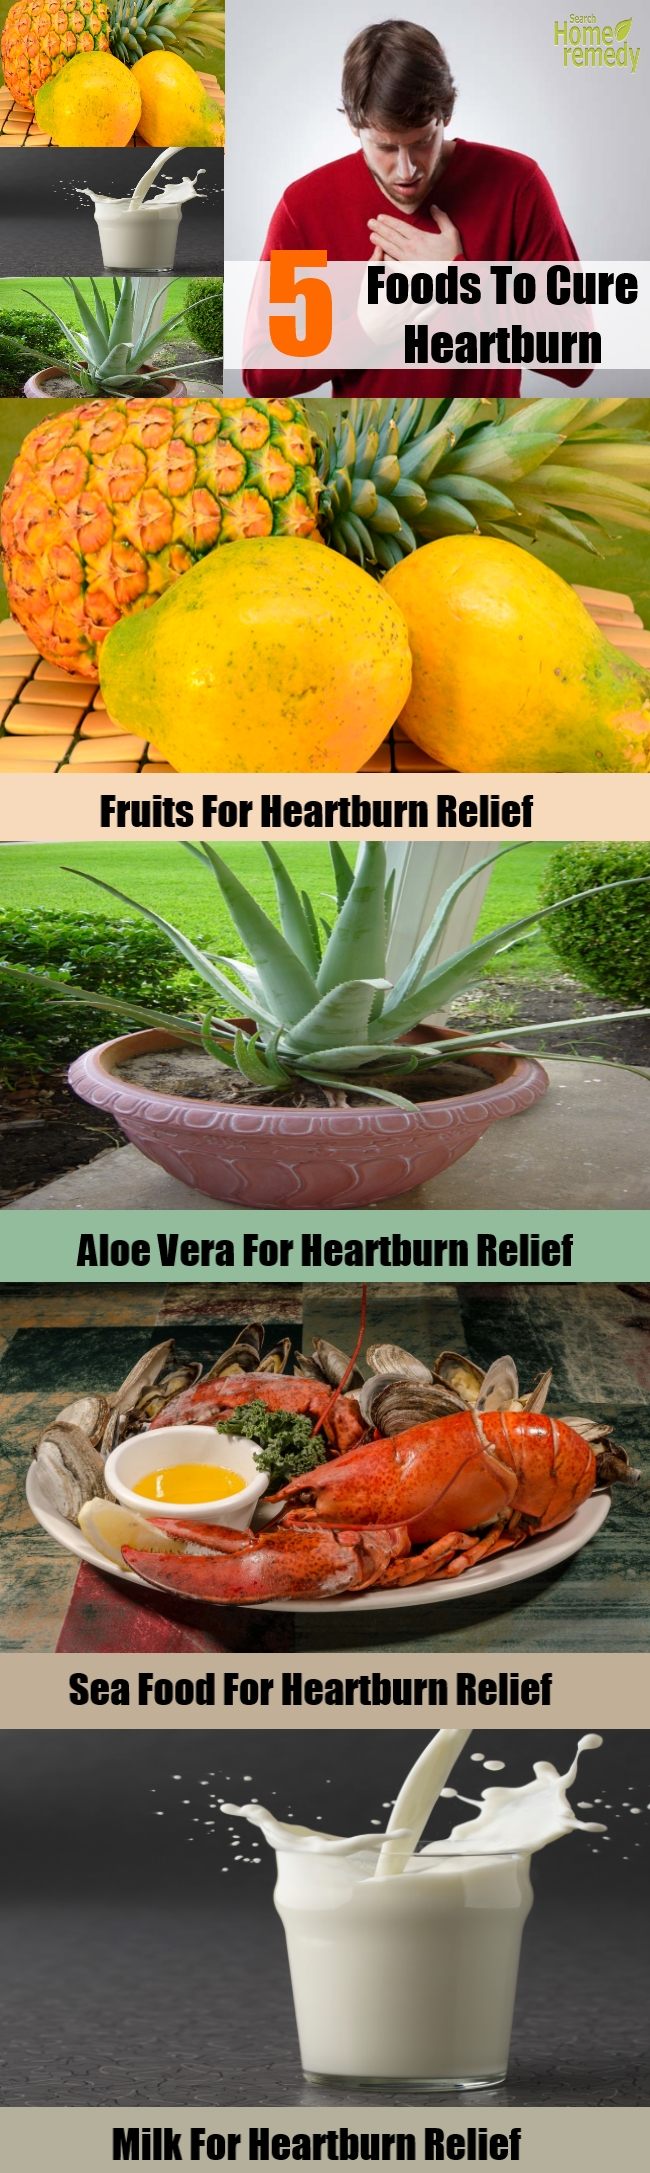 5 Foods To Cure Heartburn